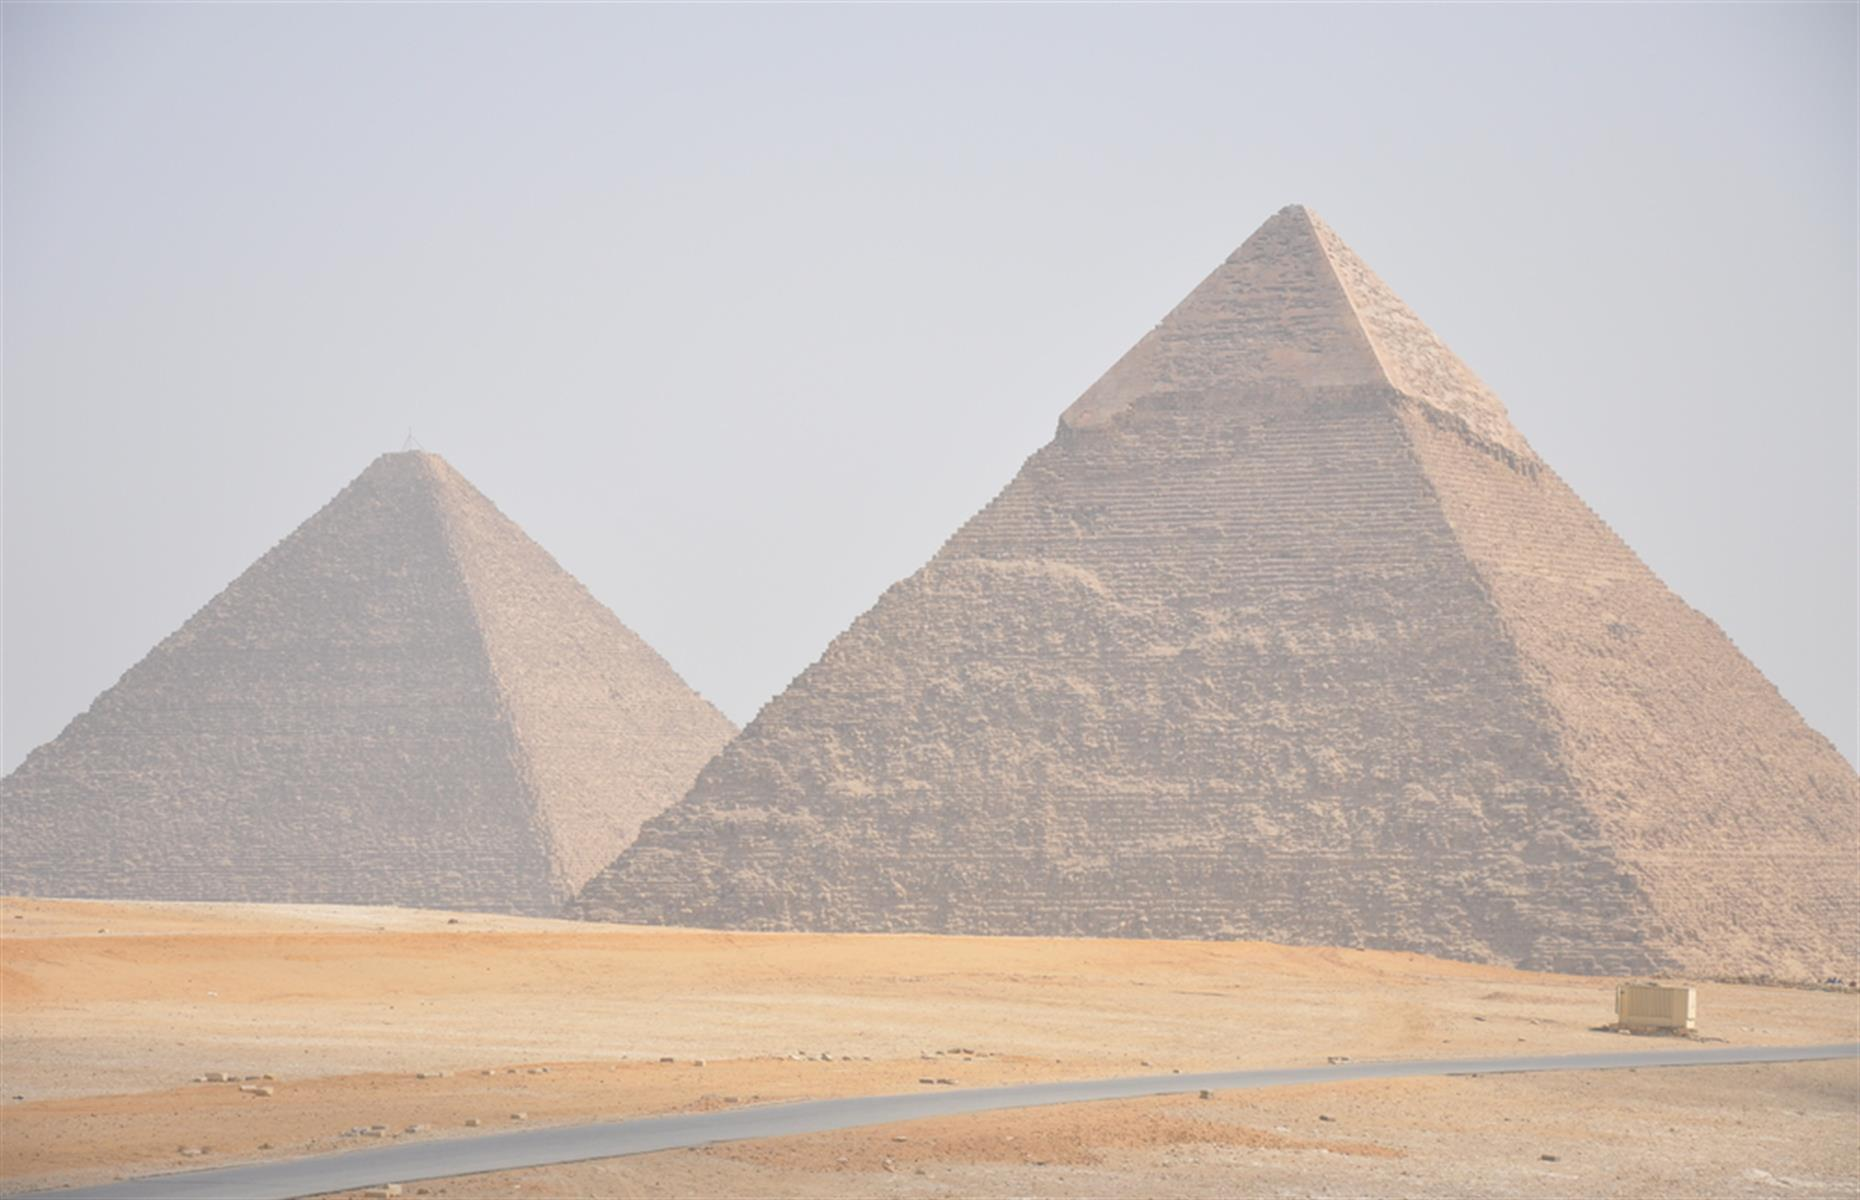 Slide 31 of 33: Not only is pollution from the nearby city of Cairo damaging the incredible monuments, it's causing decreased visibility for tourists. Those views aren't so Instagrammable when you add a smog filter. Check out new secrets of the world's ancient wonders here.